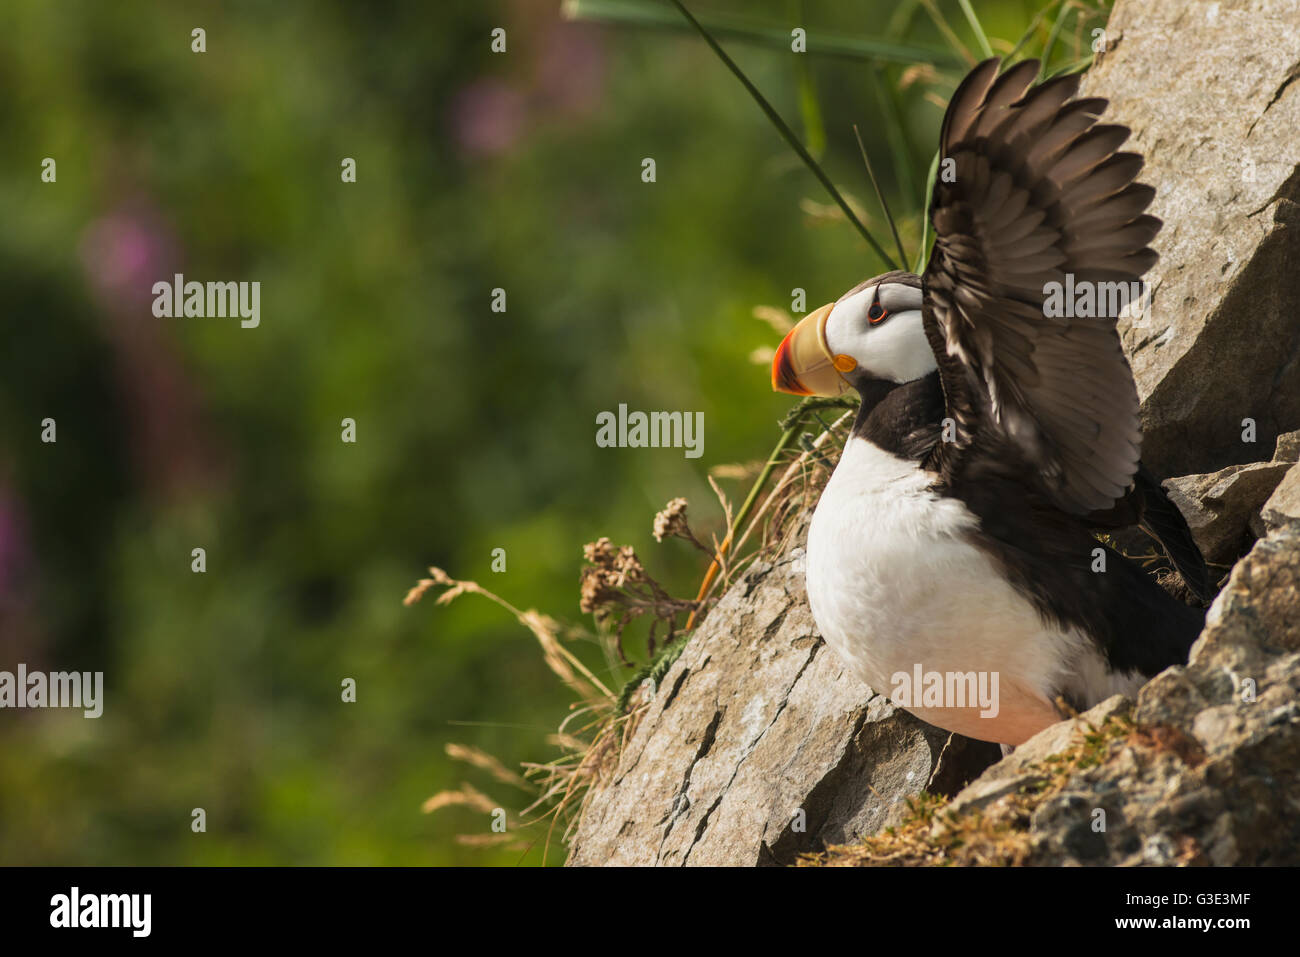 A horned puffin spreads its wings on Chisik Island in the Tuxedni Wilderness Area. Stock Photo